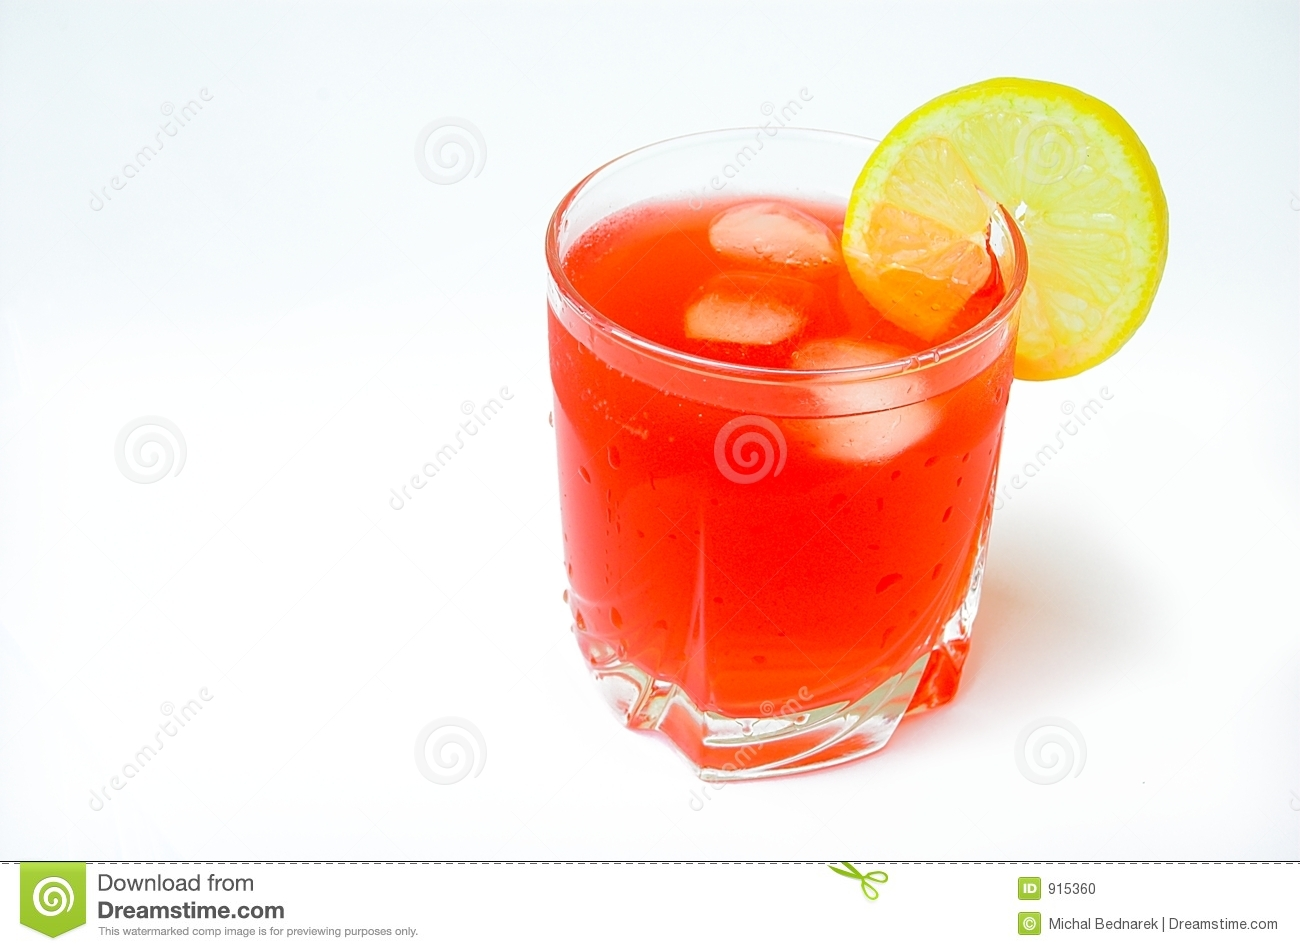 Cool Drink Stock Photo - Image: 915360